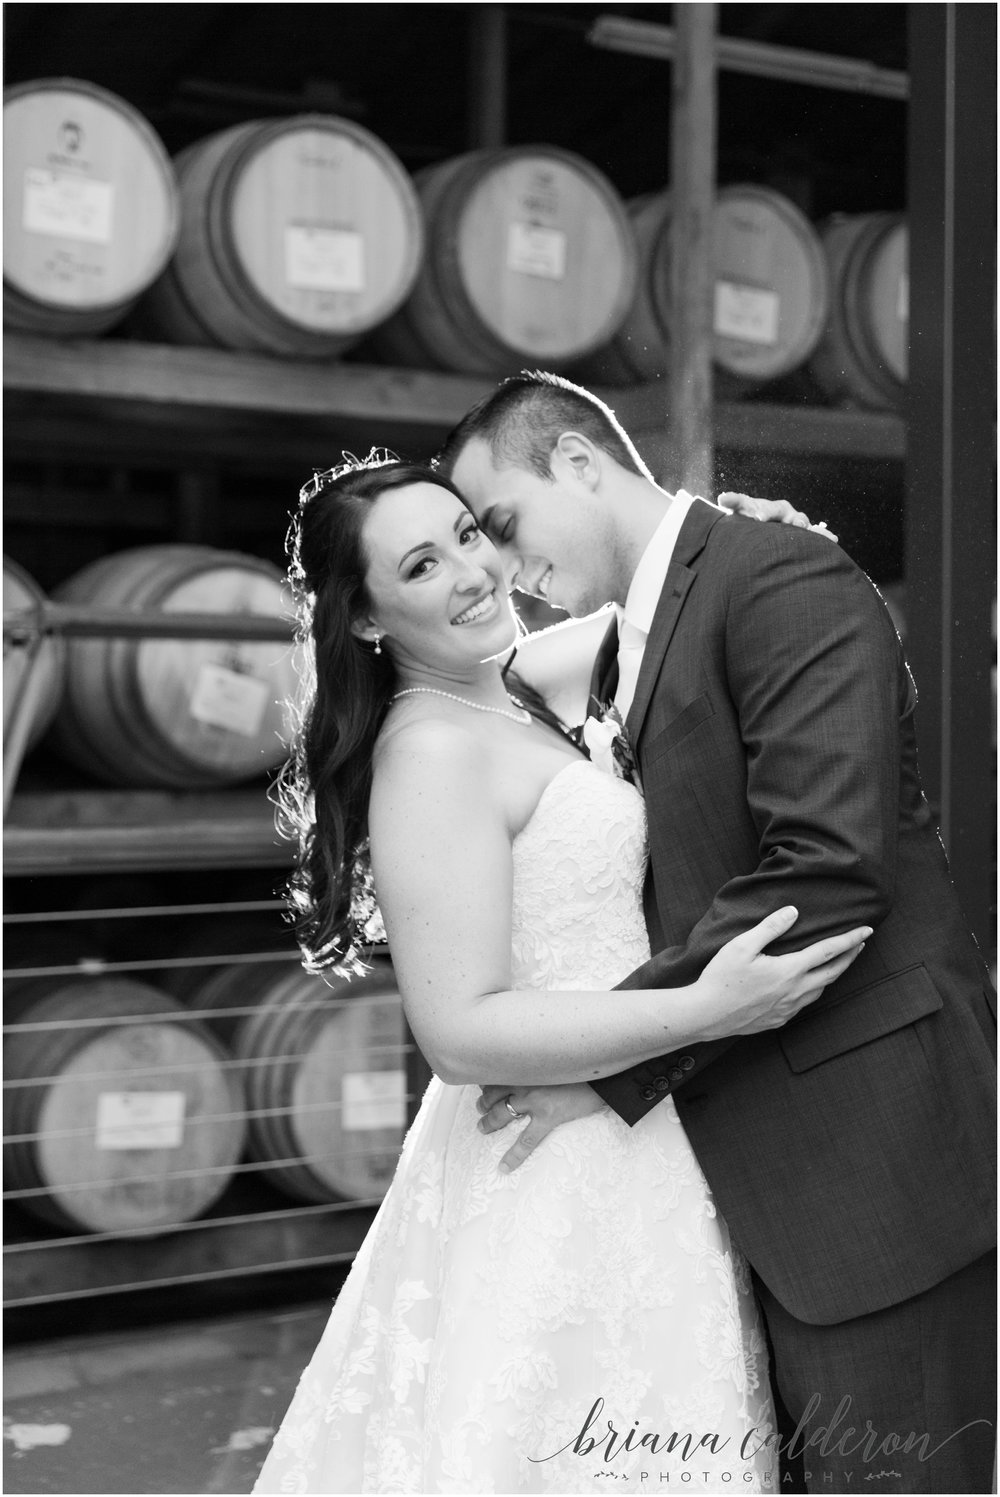 Bargetto Winery Wedding photos by Briana Calderon Photography_0968.jpg